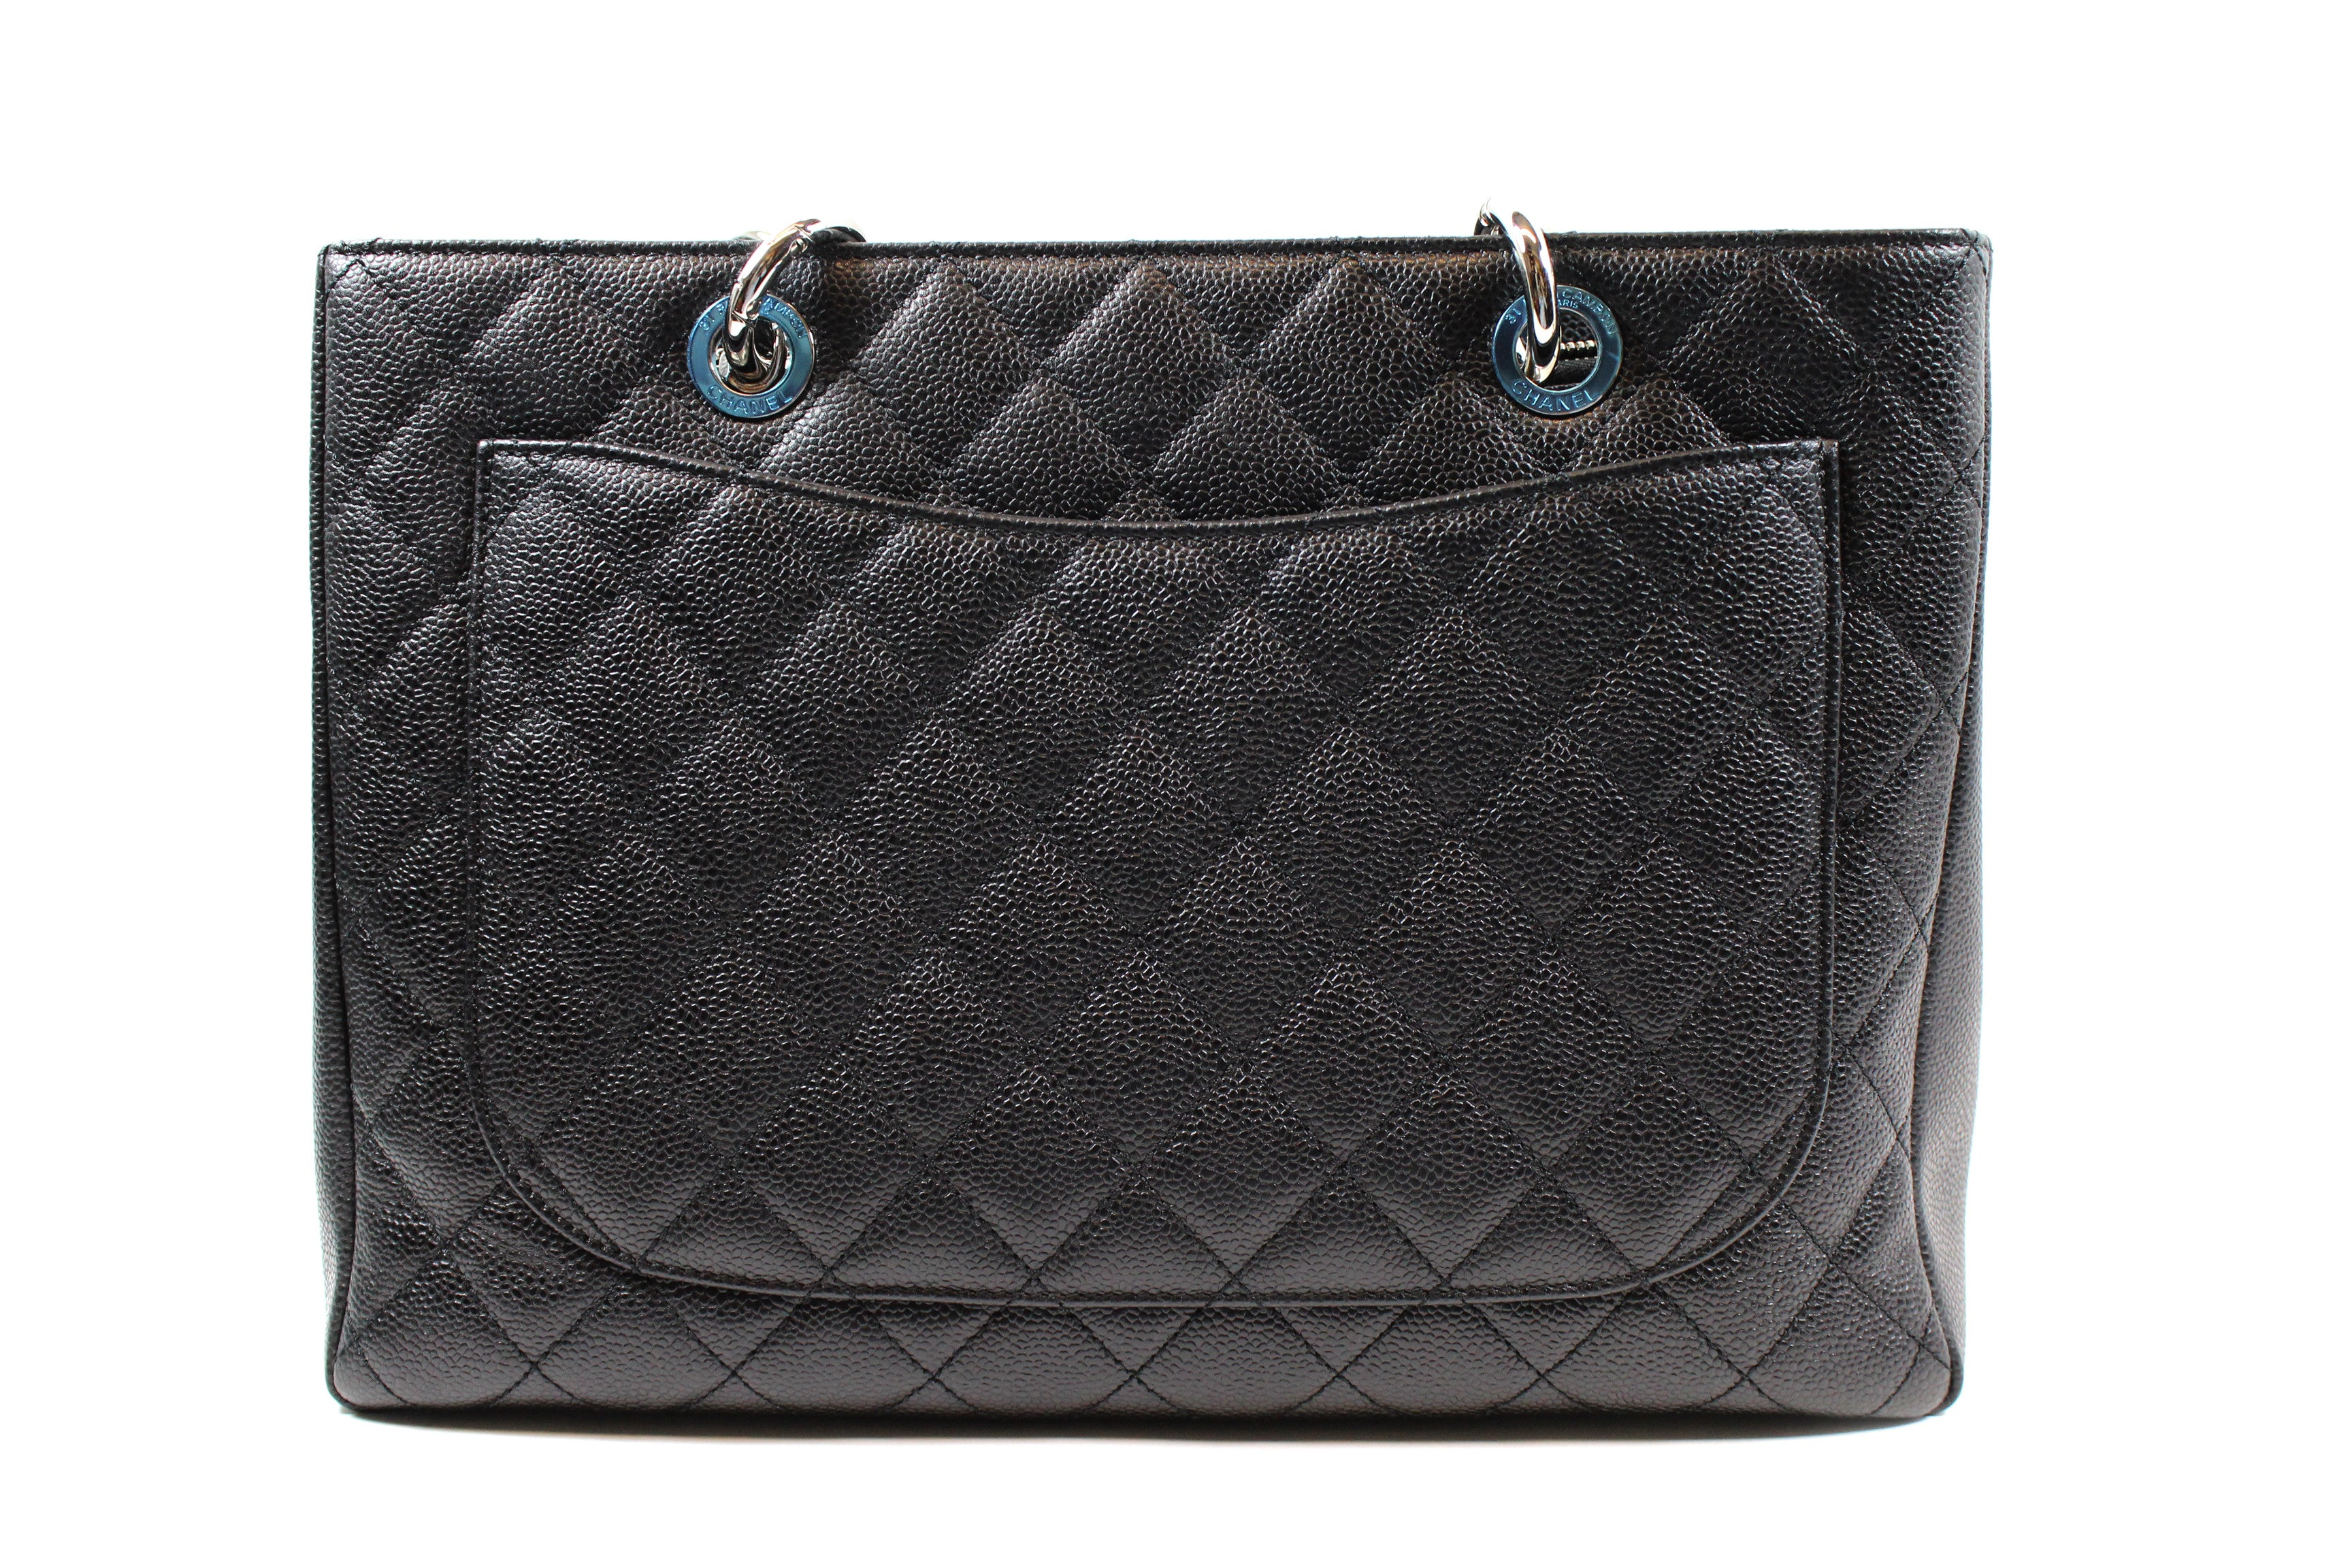 Chanel 'Grand Shopping' Quilted Caviar Black Leather Tote